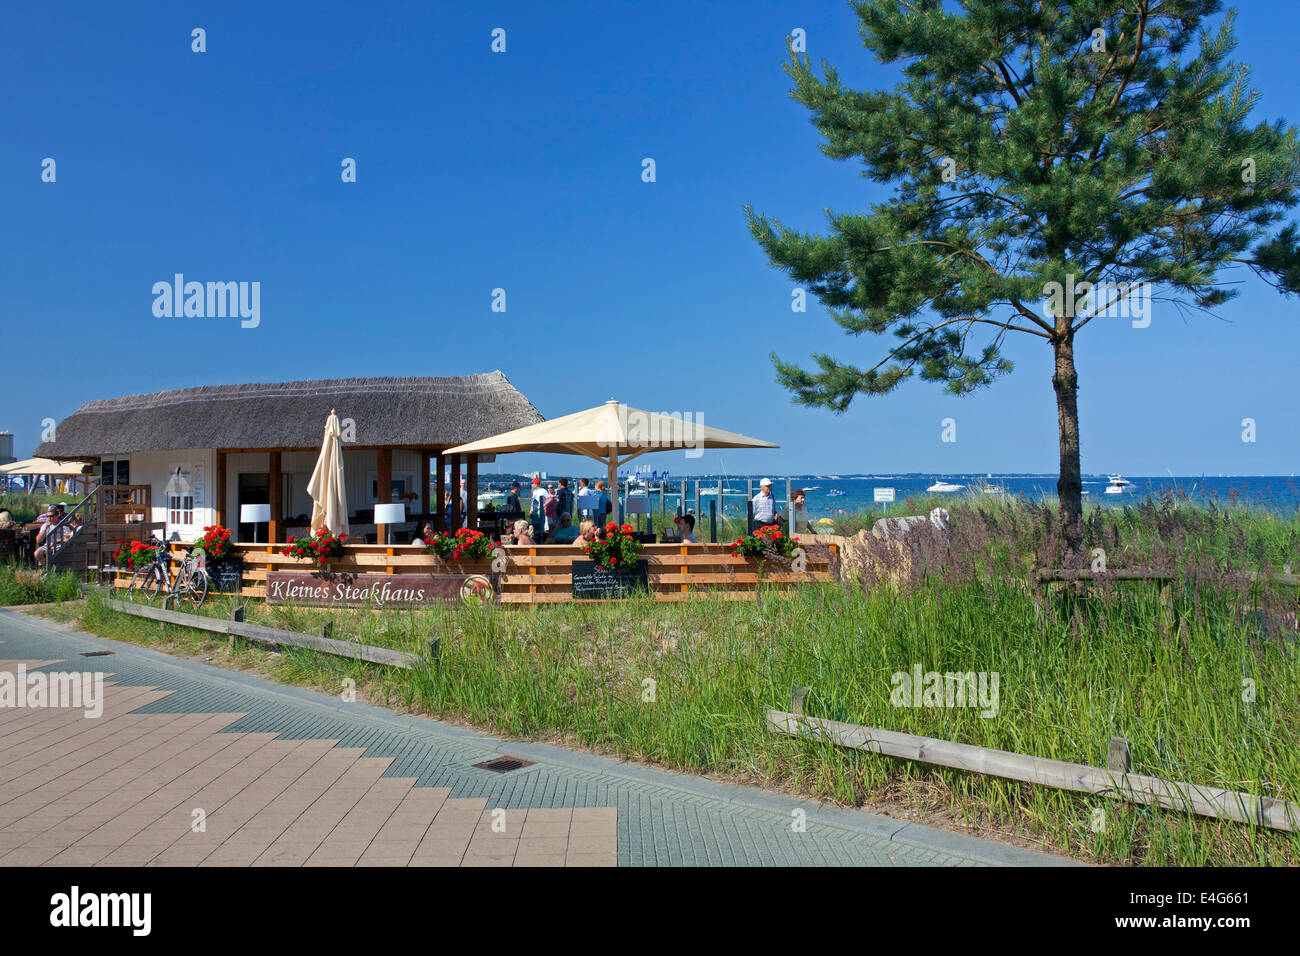 Café / restaurant at Scharbeutz, seaside resort along the Baltic Sea, Ostholstein, Schleswig-Holstein, Germany - Stock Image